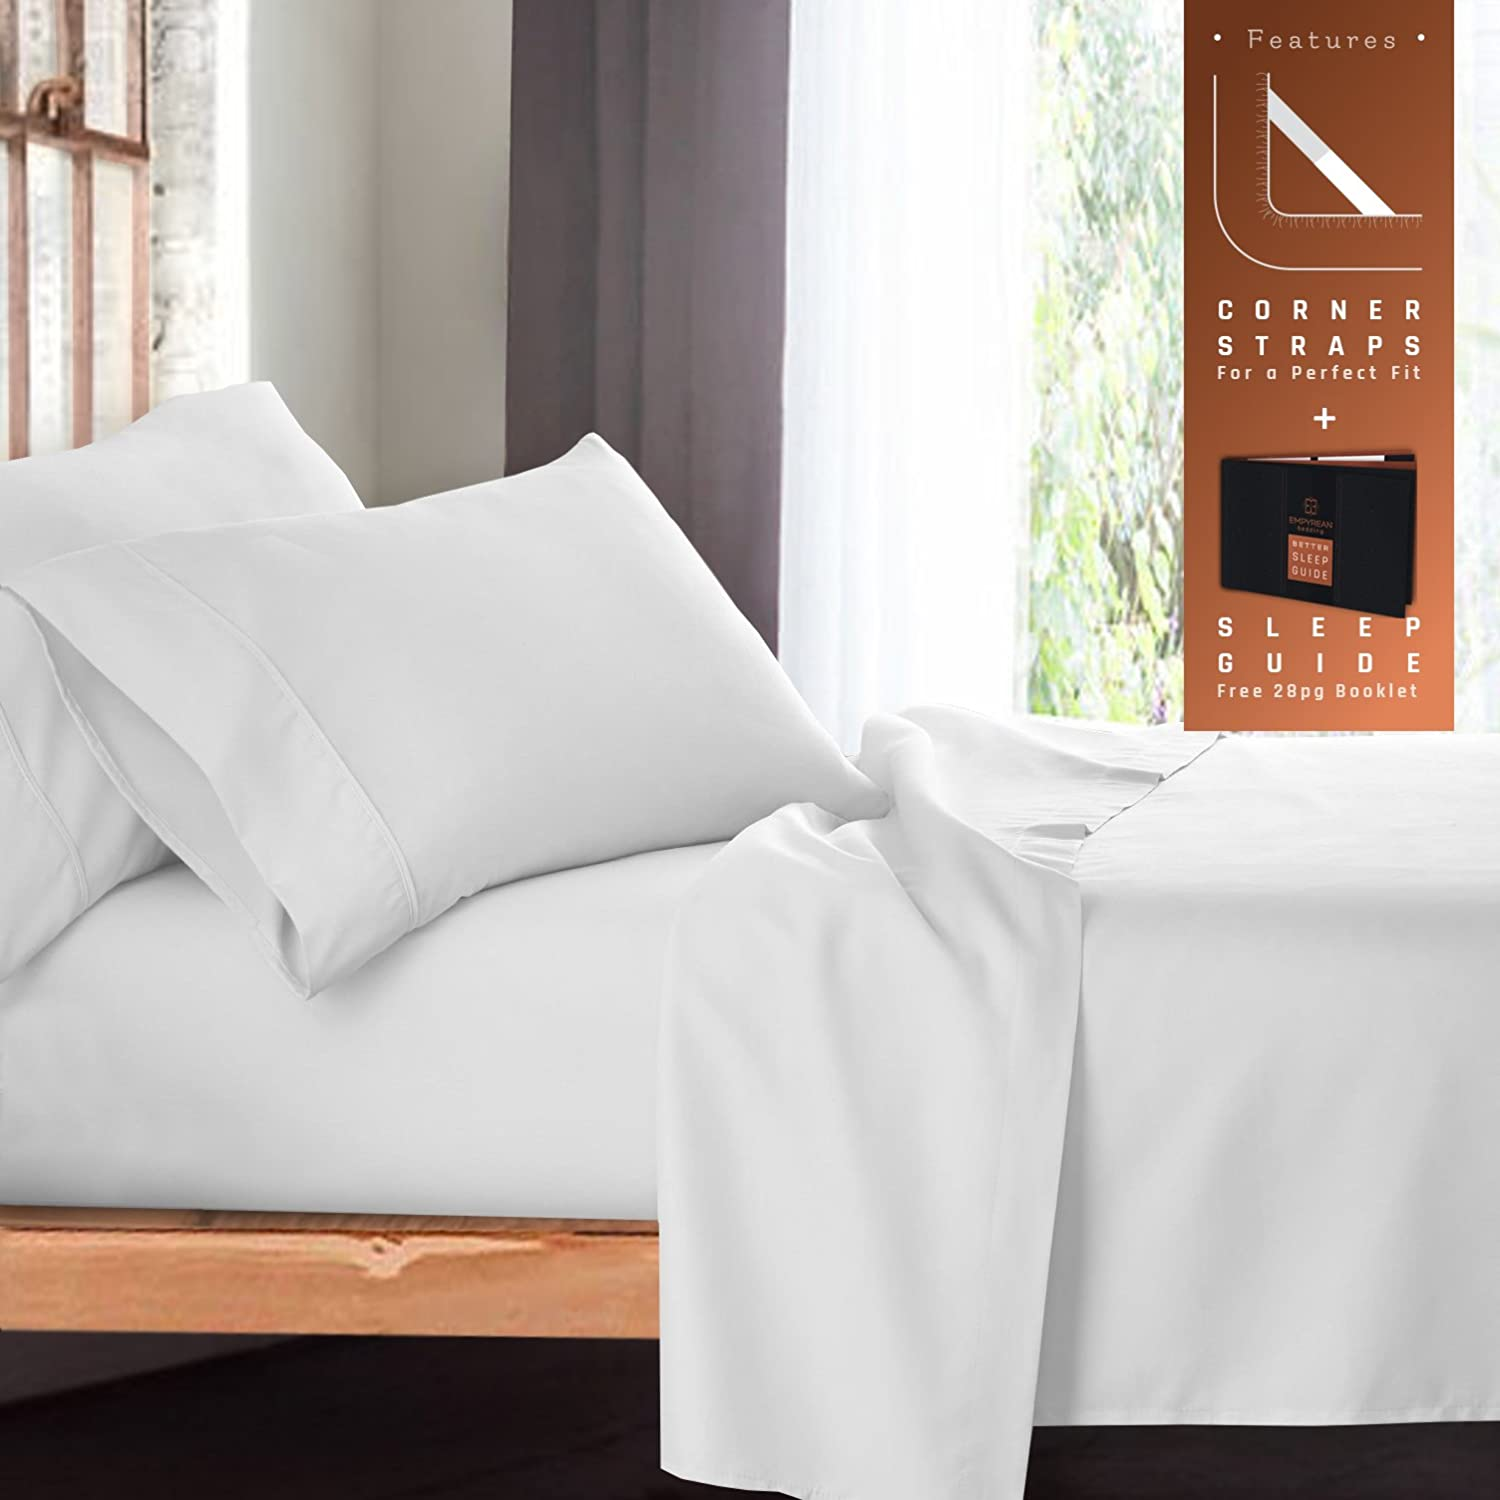 bedding 4 piece king bed sheet set with corner straps on extra deep